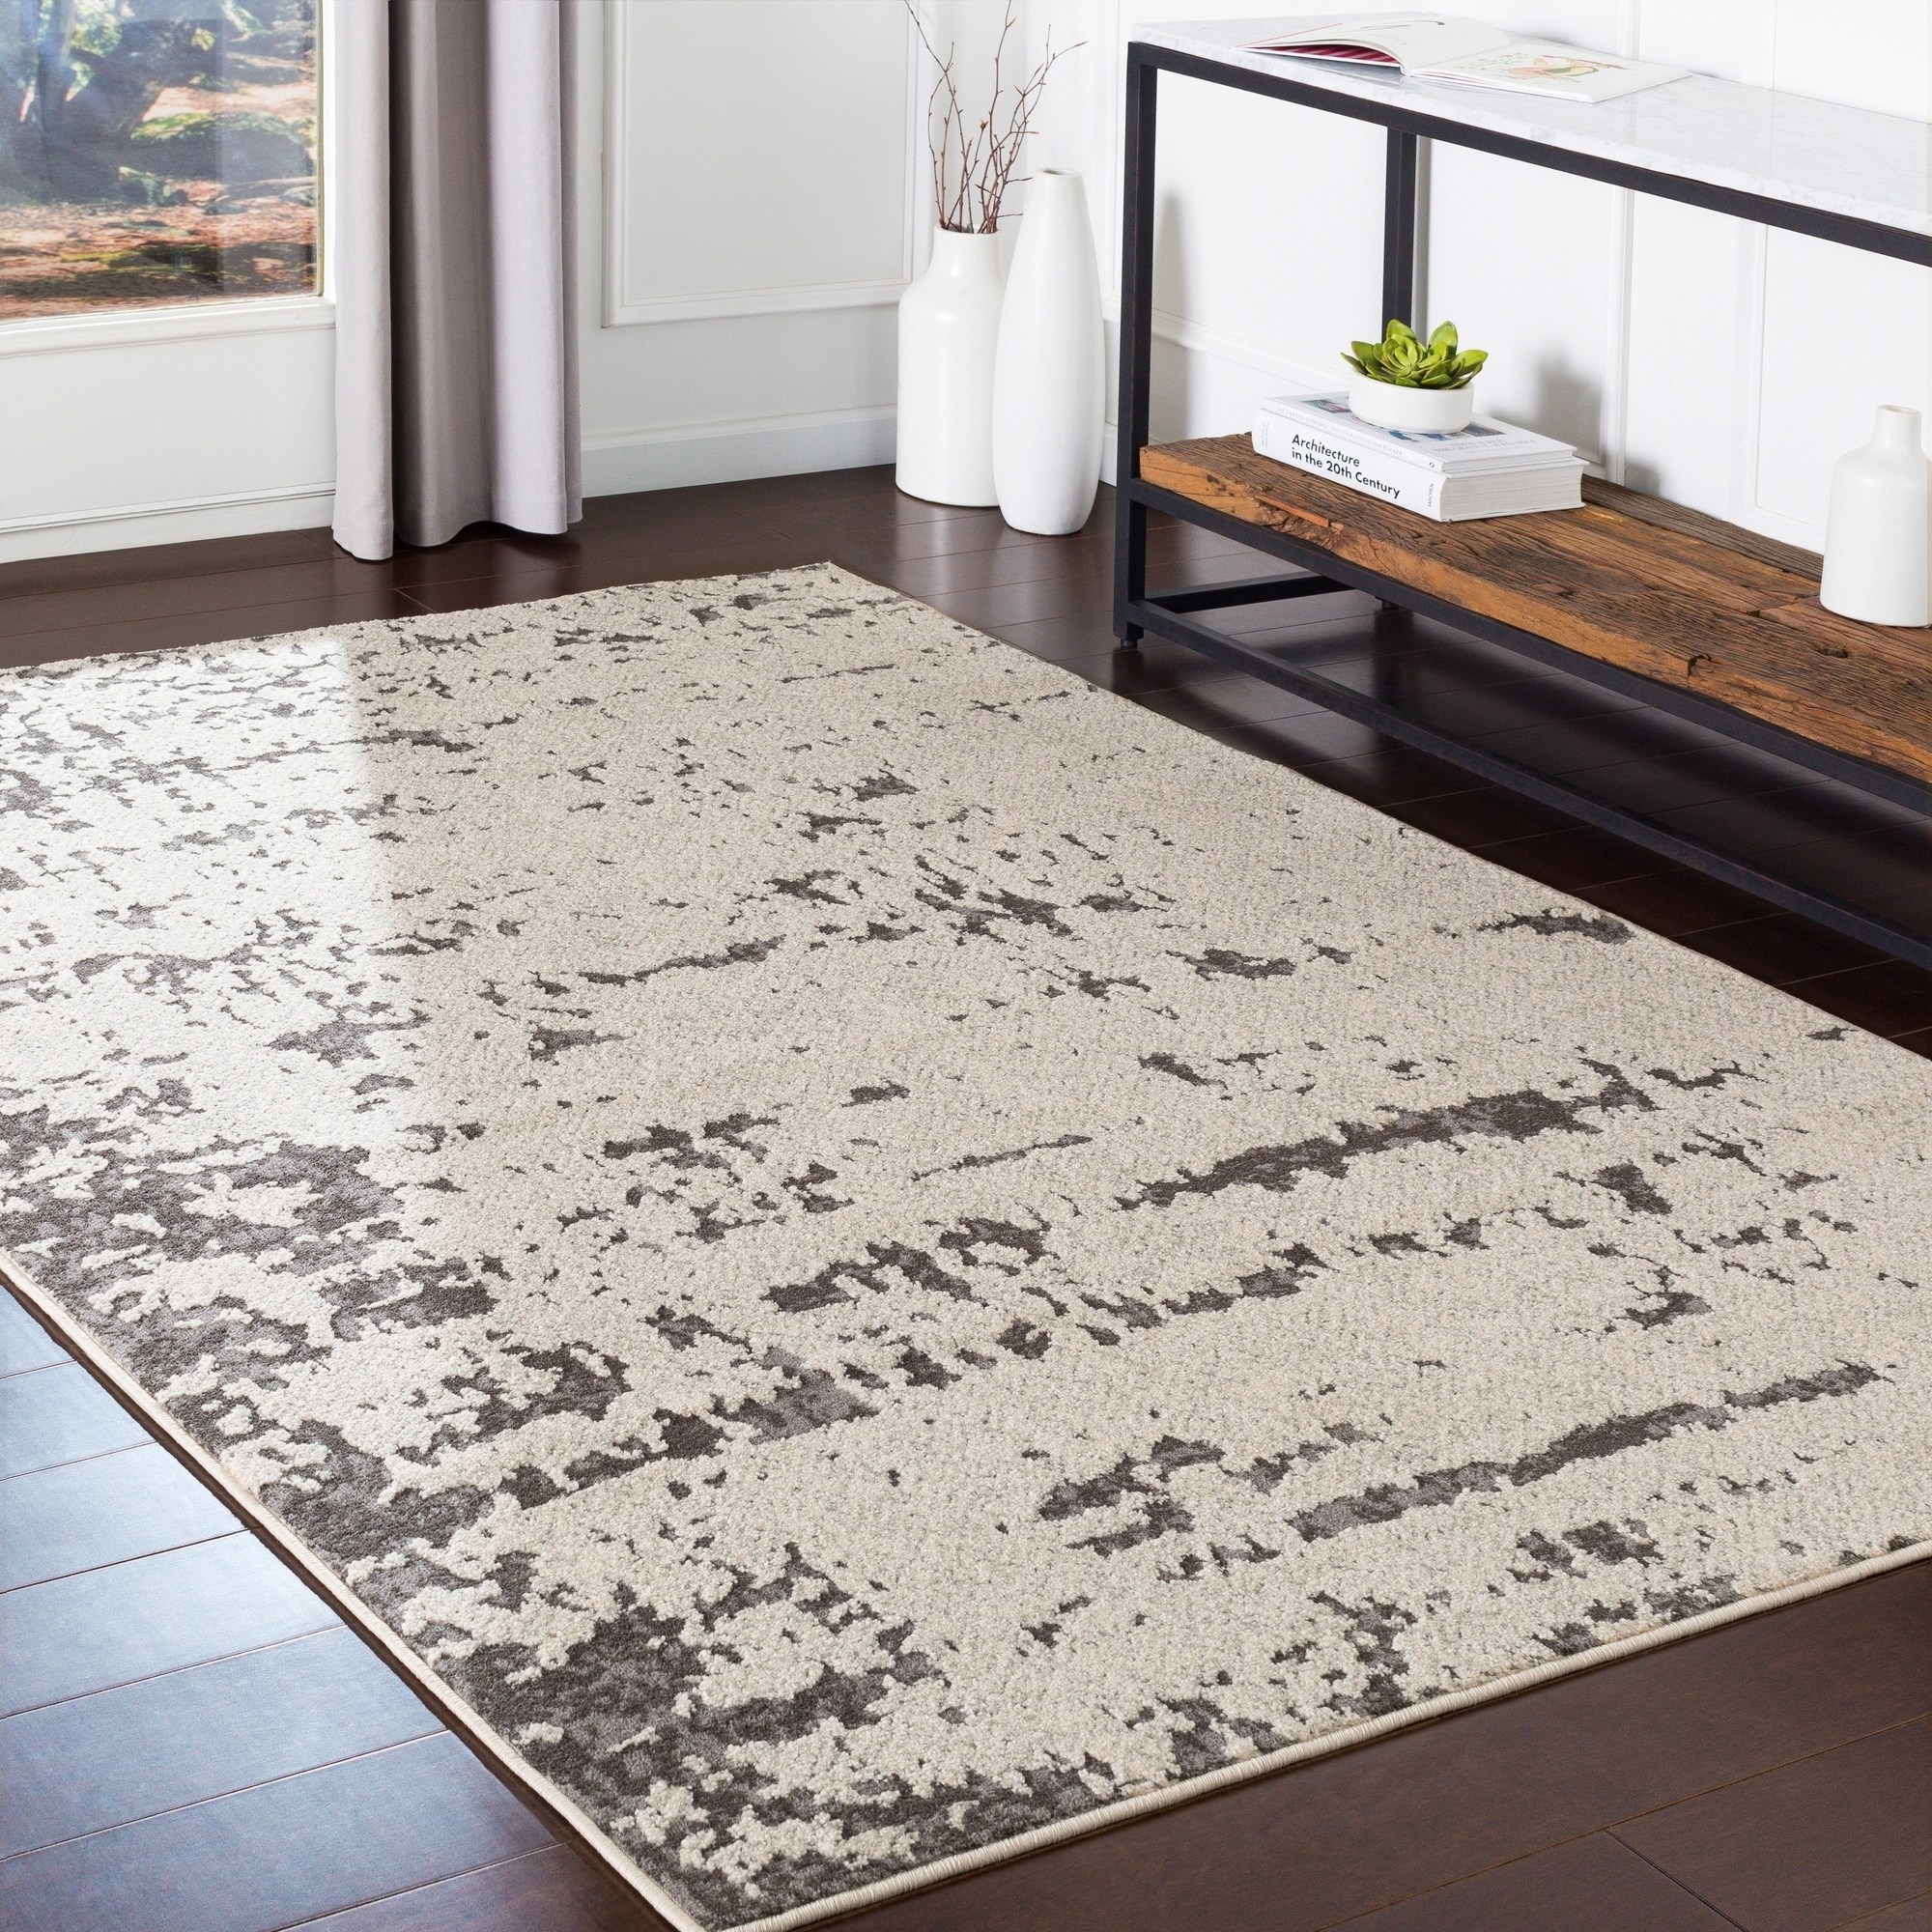 Online Shopping Bedding Furniture Electronics Jewelry Clothing More Area Rugs Rugs Colorful Rugs